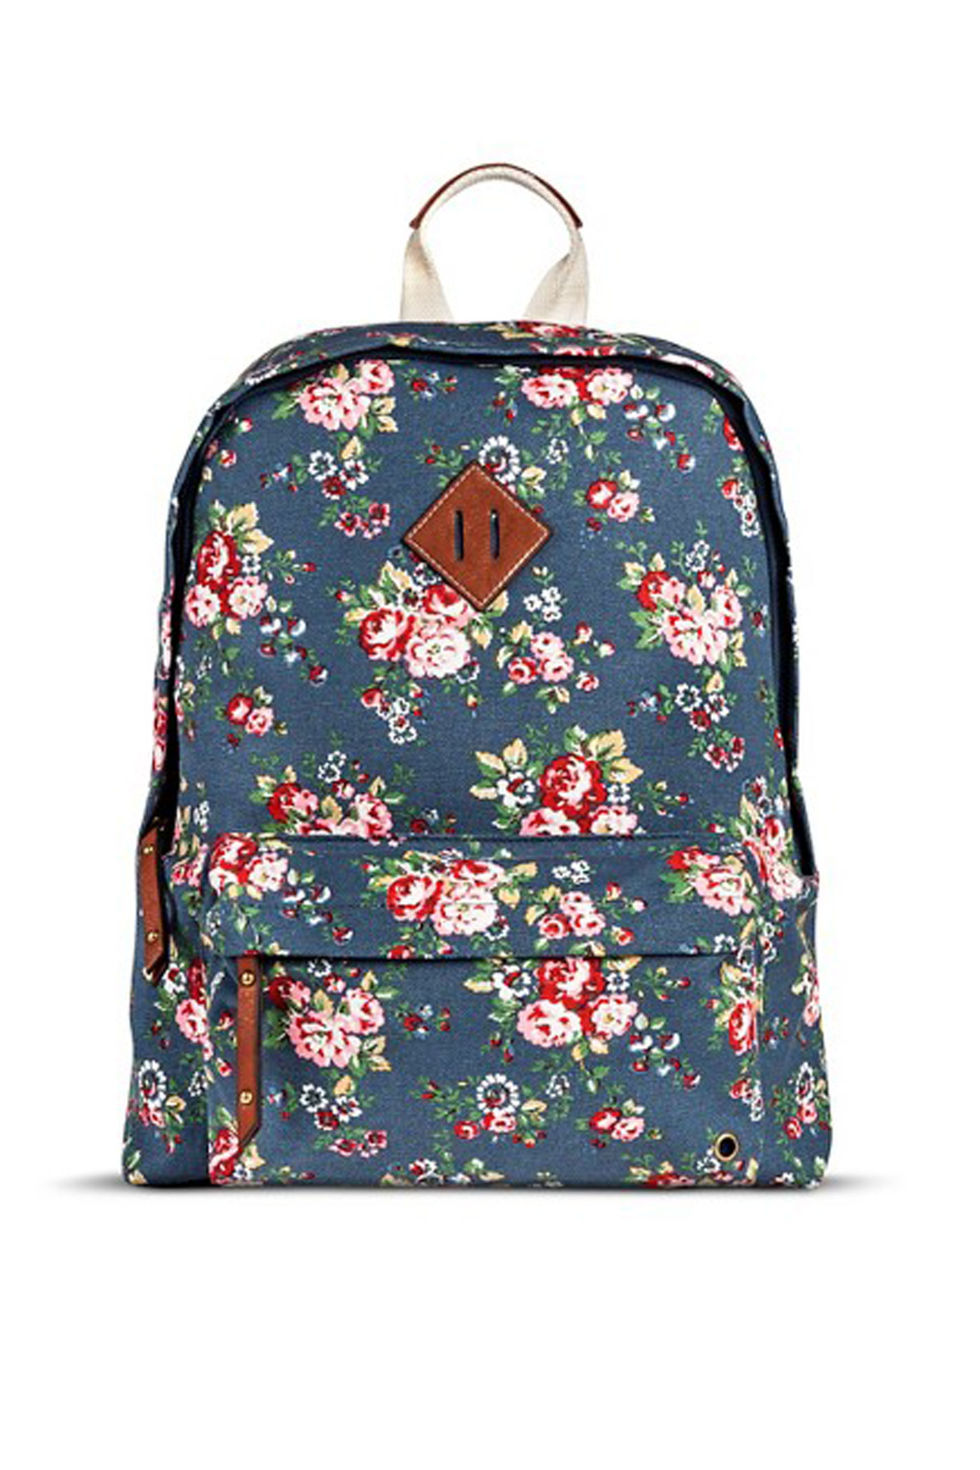 Backpacks For Teen Girls 4IPYLJr6